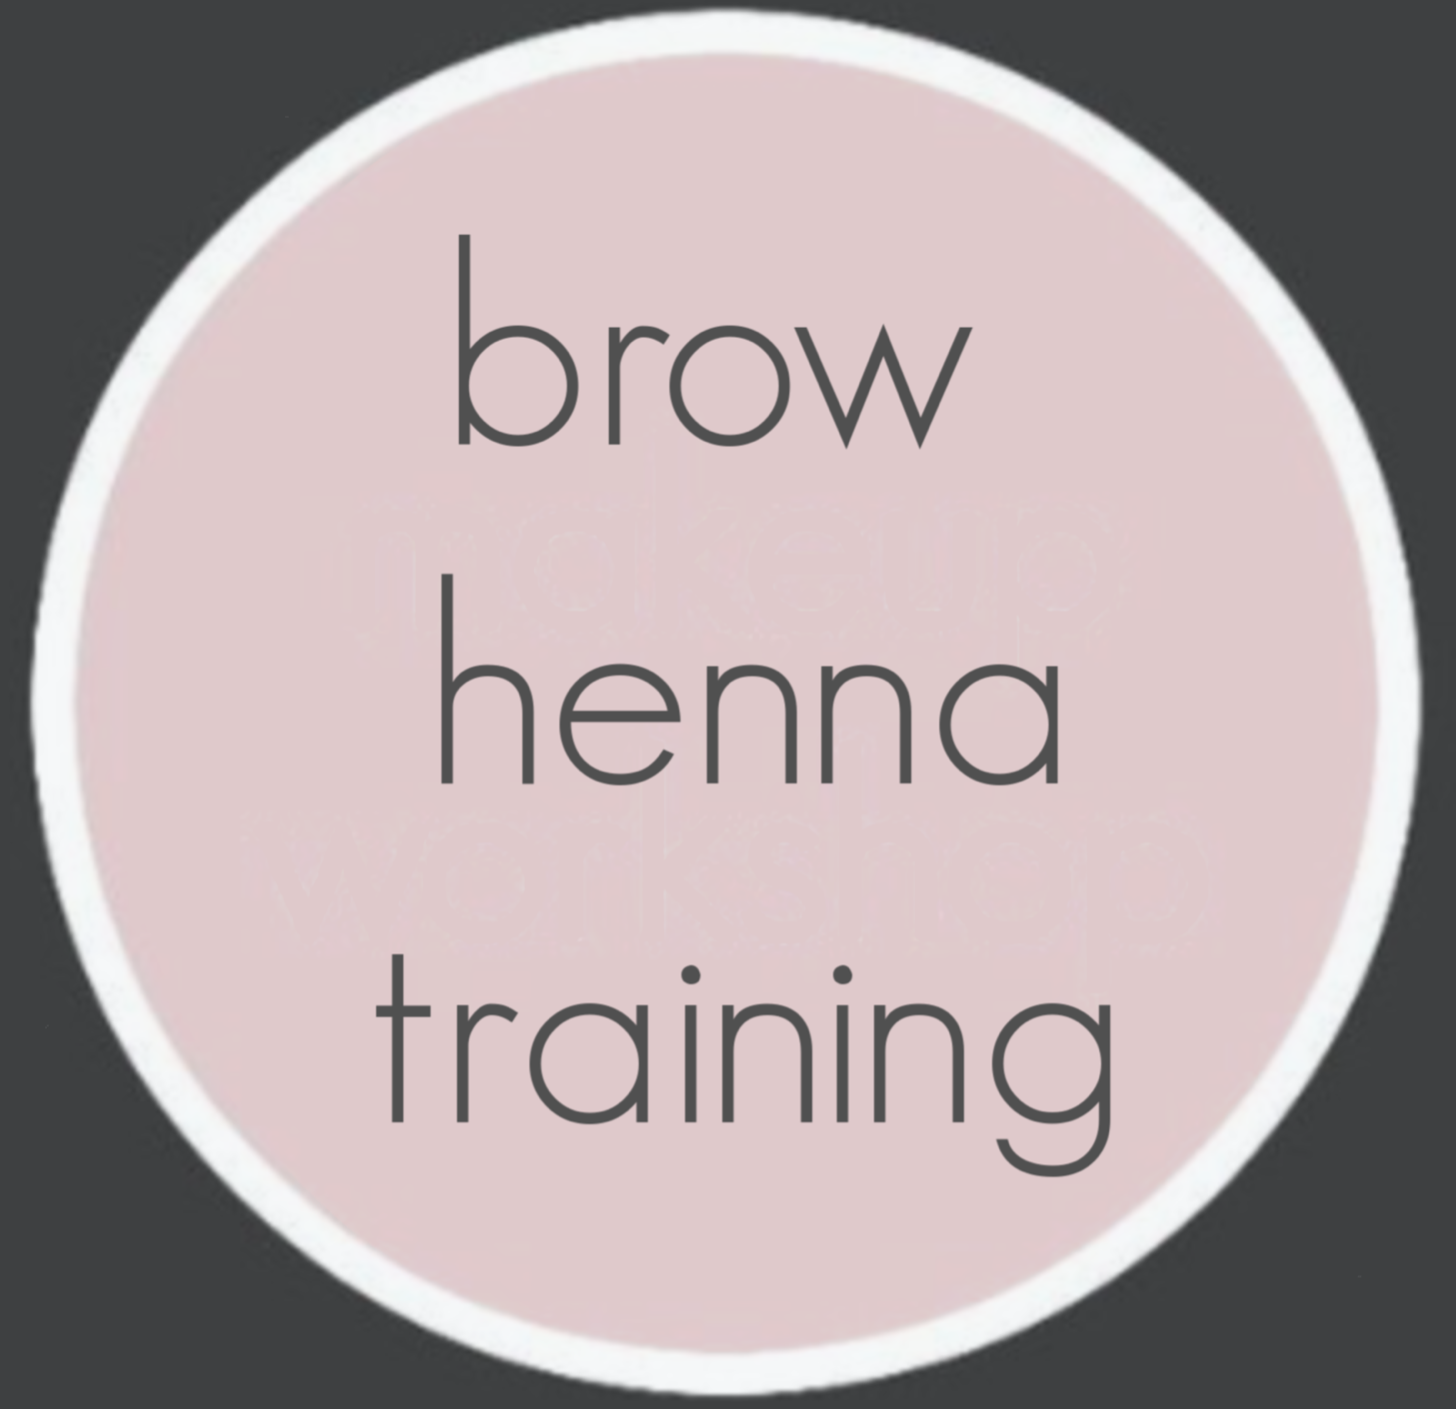 BROW HENNA TRAINING